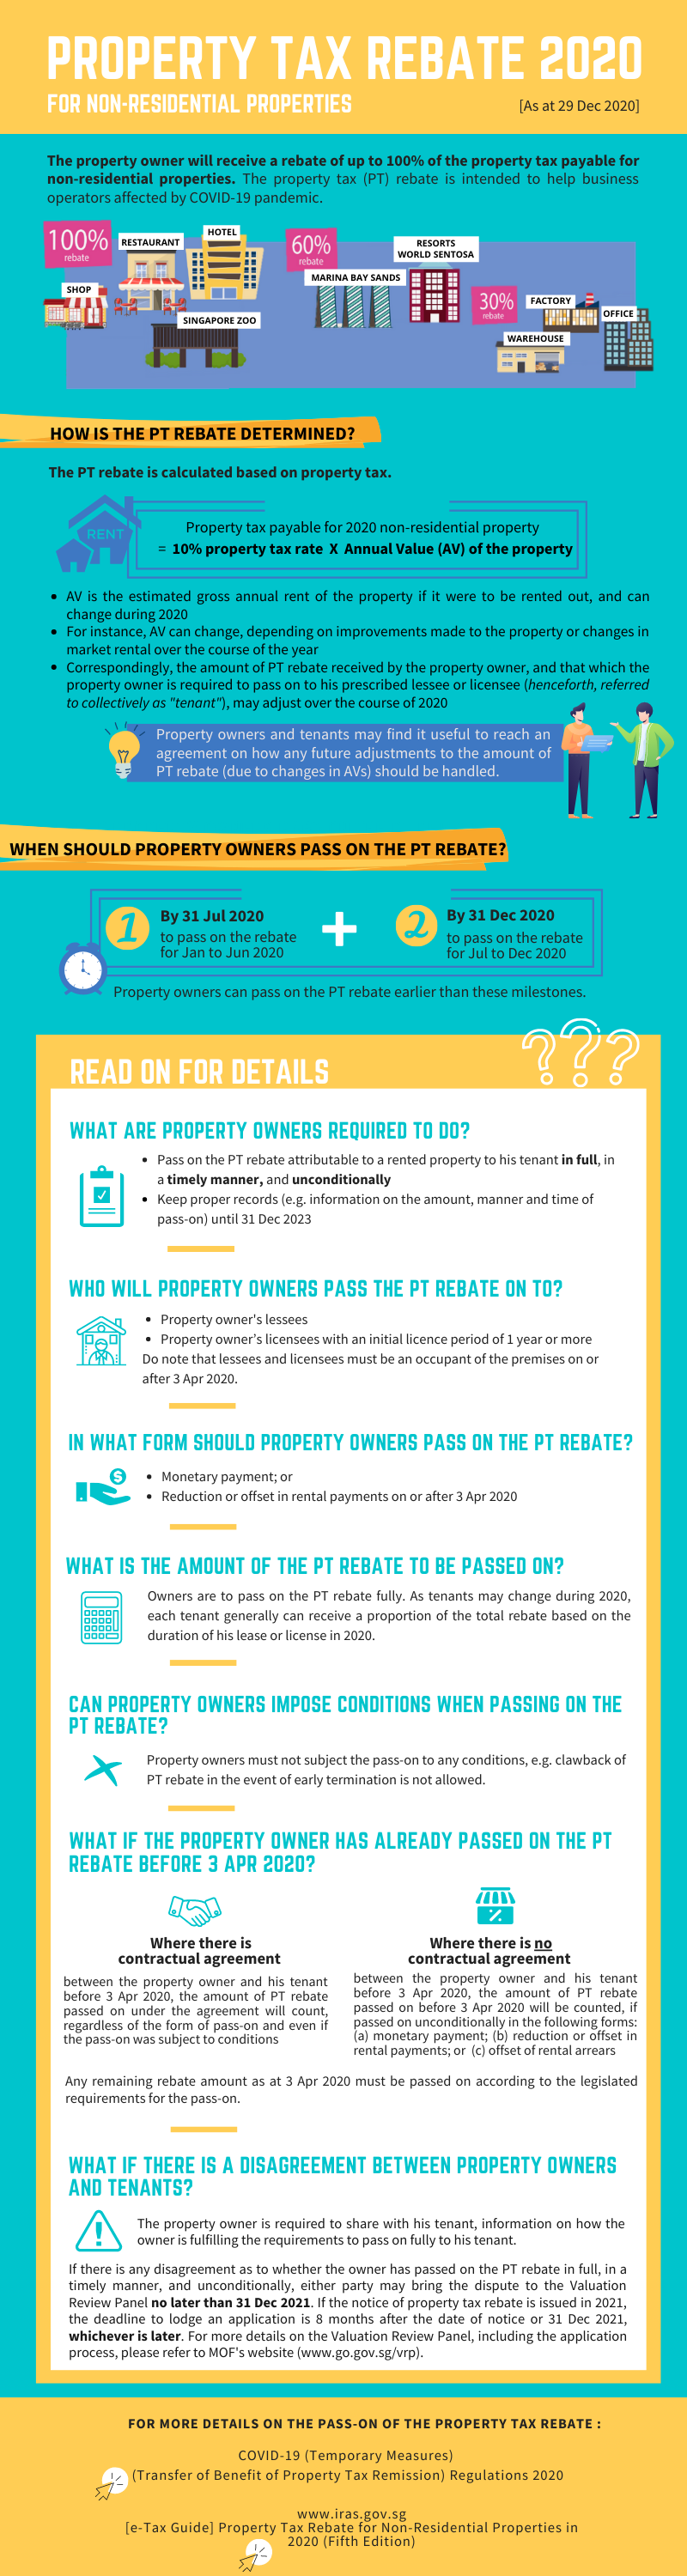 Infographic-Property Tax Rebate 2020 for Non_Residential Properties